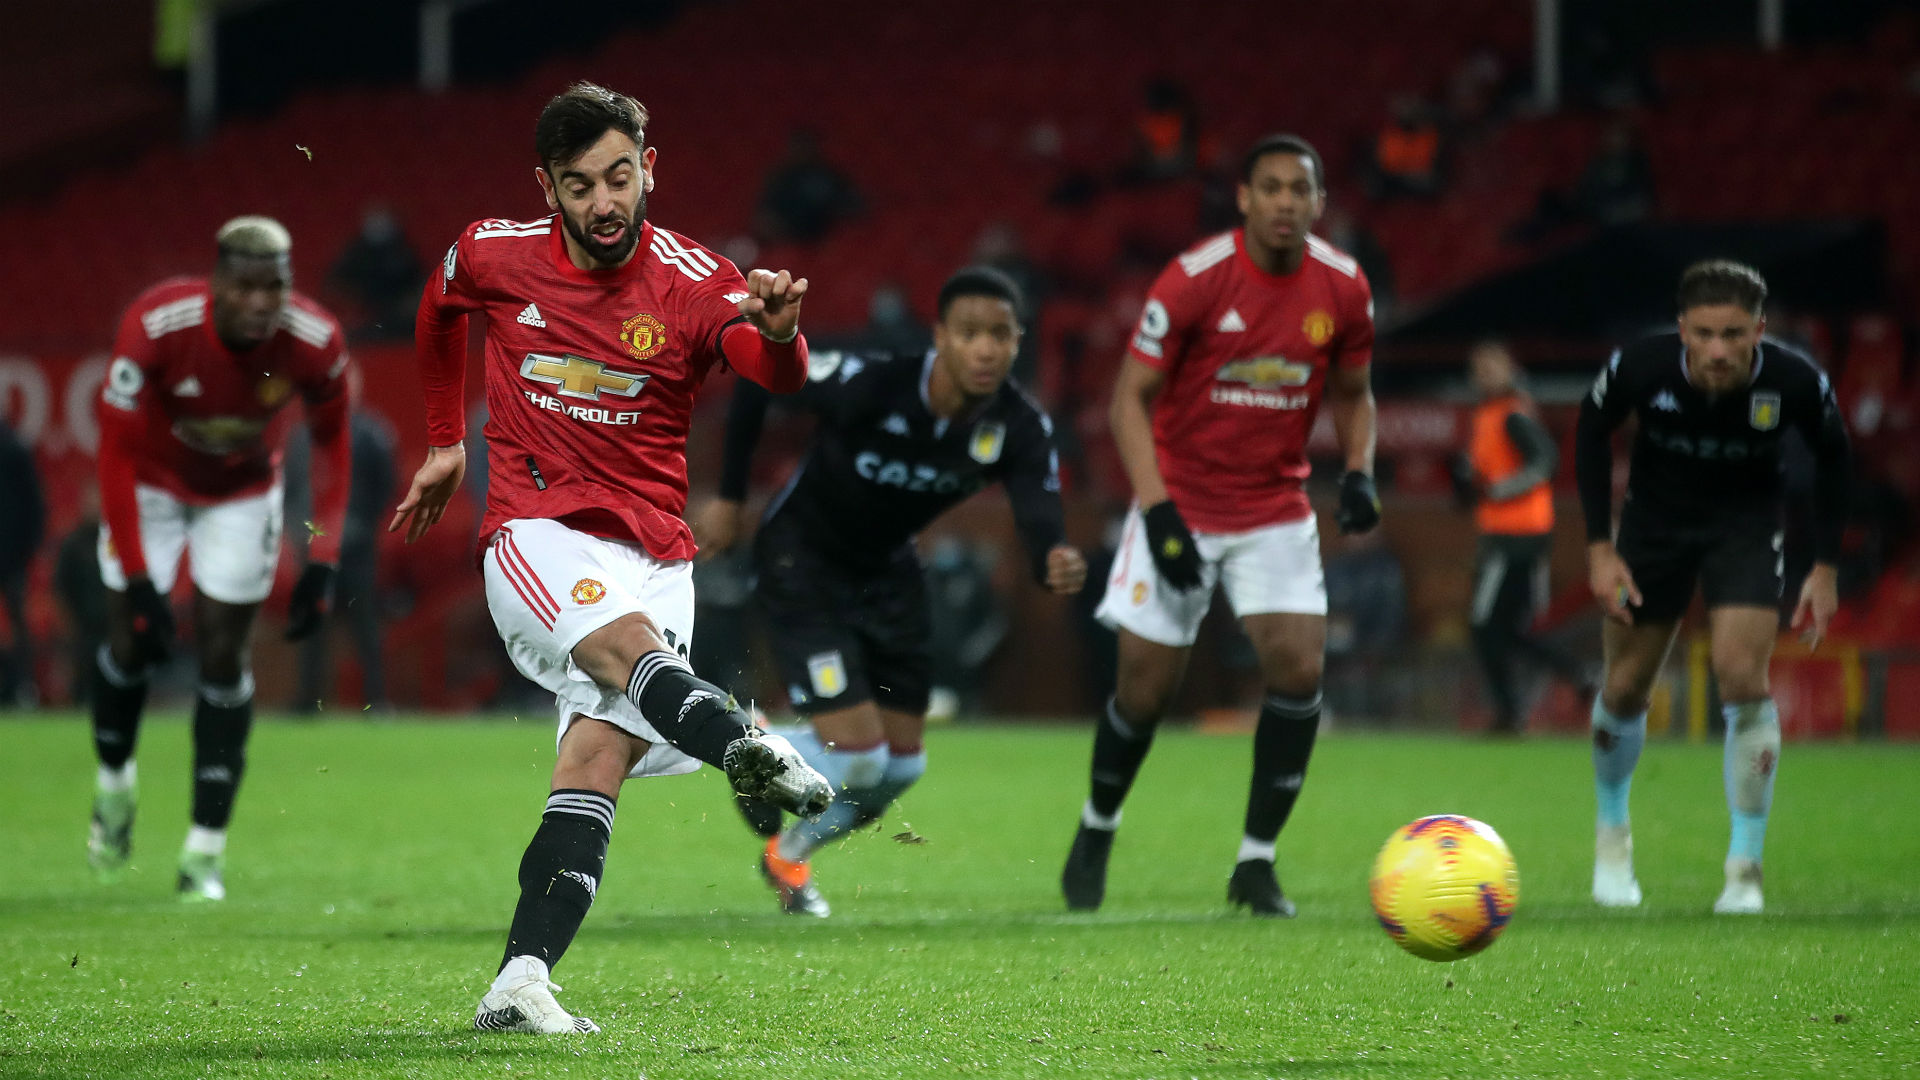 Manchester United 2-1 Aston Villa: Fernandes sends Red Devils level with leaders Liverpool